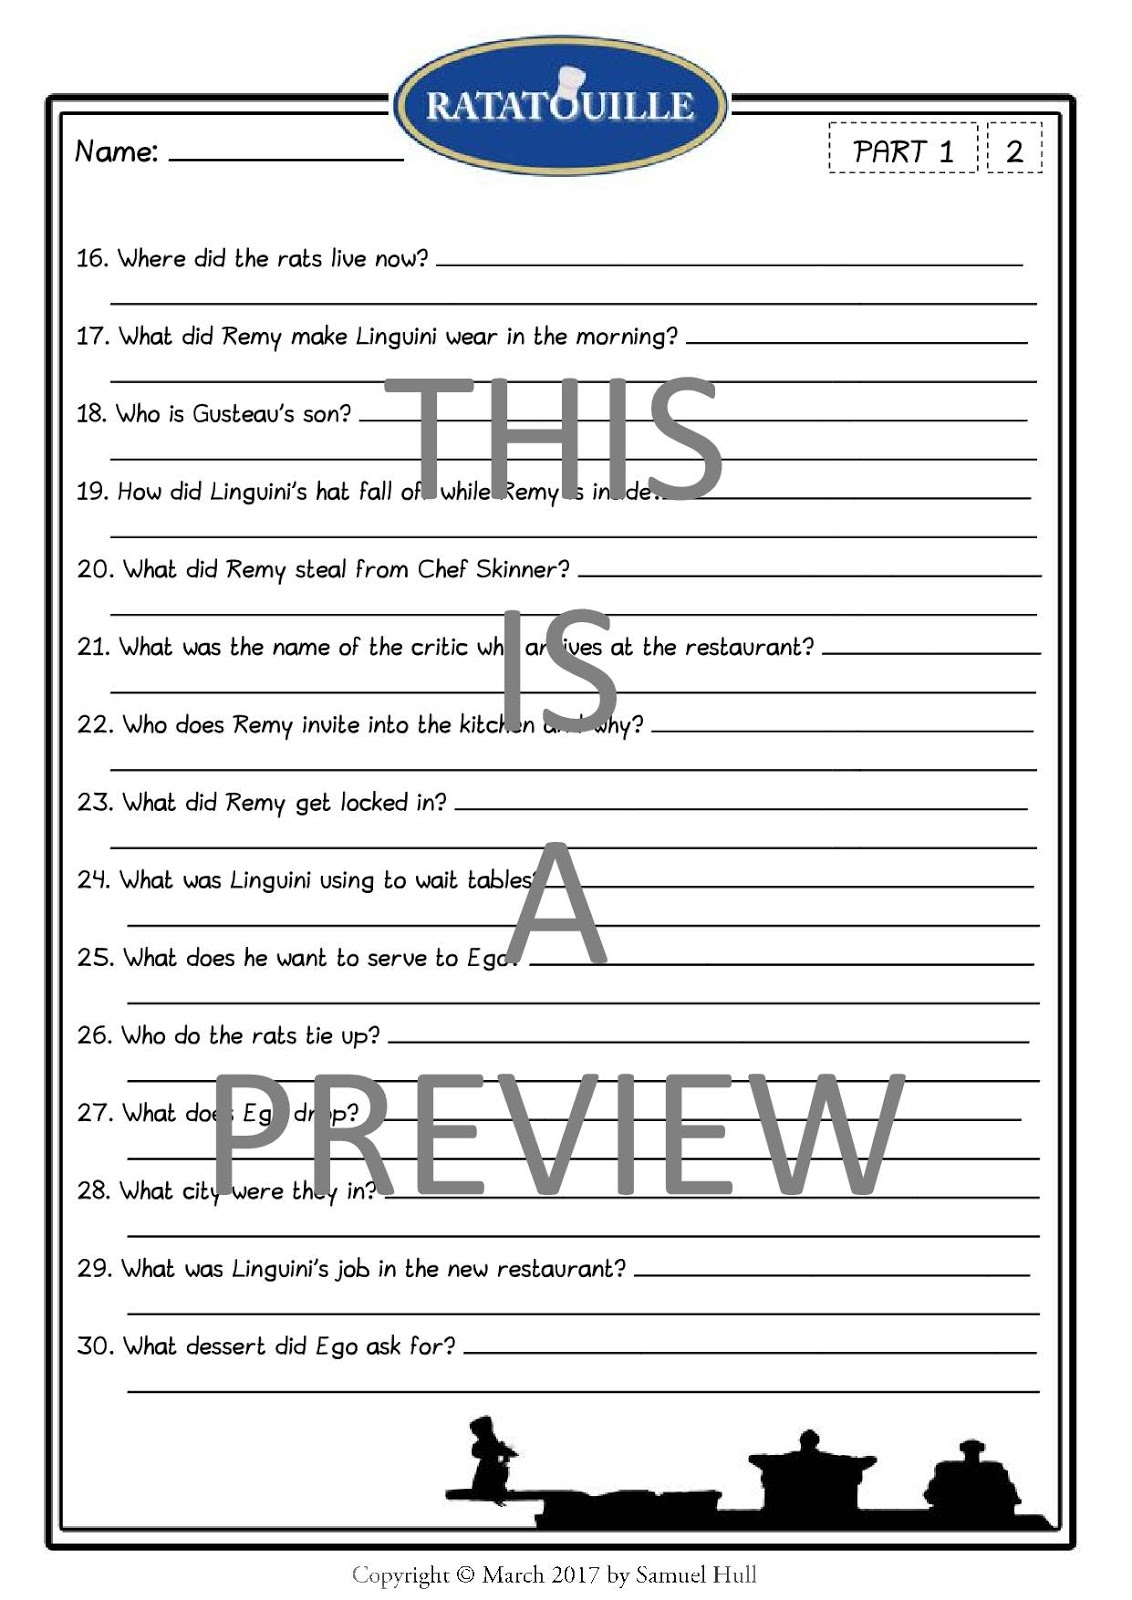 Teacherspayteachers Product Disneys Ratatouille 2007 Movie Questions Extras 3132478